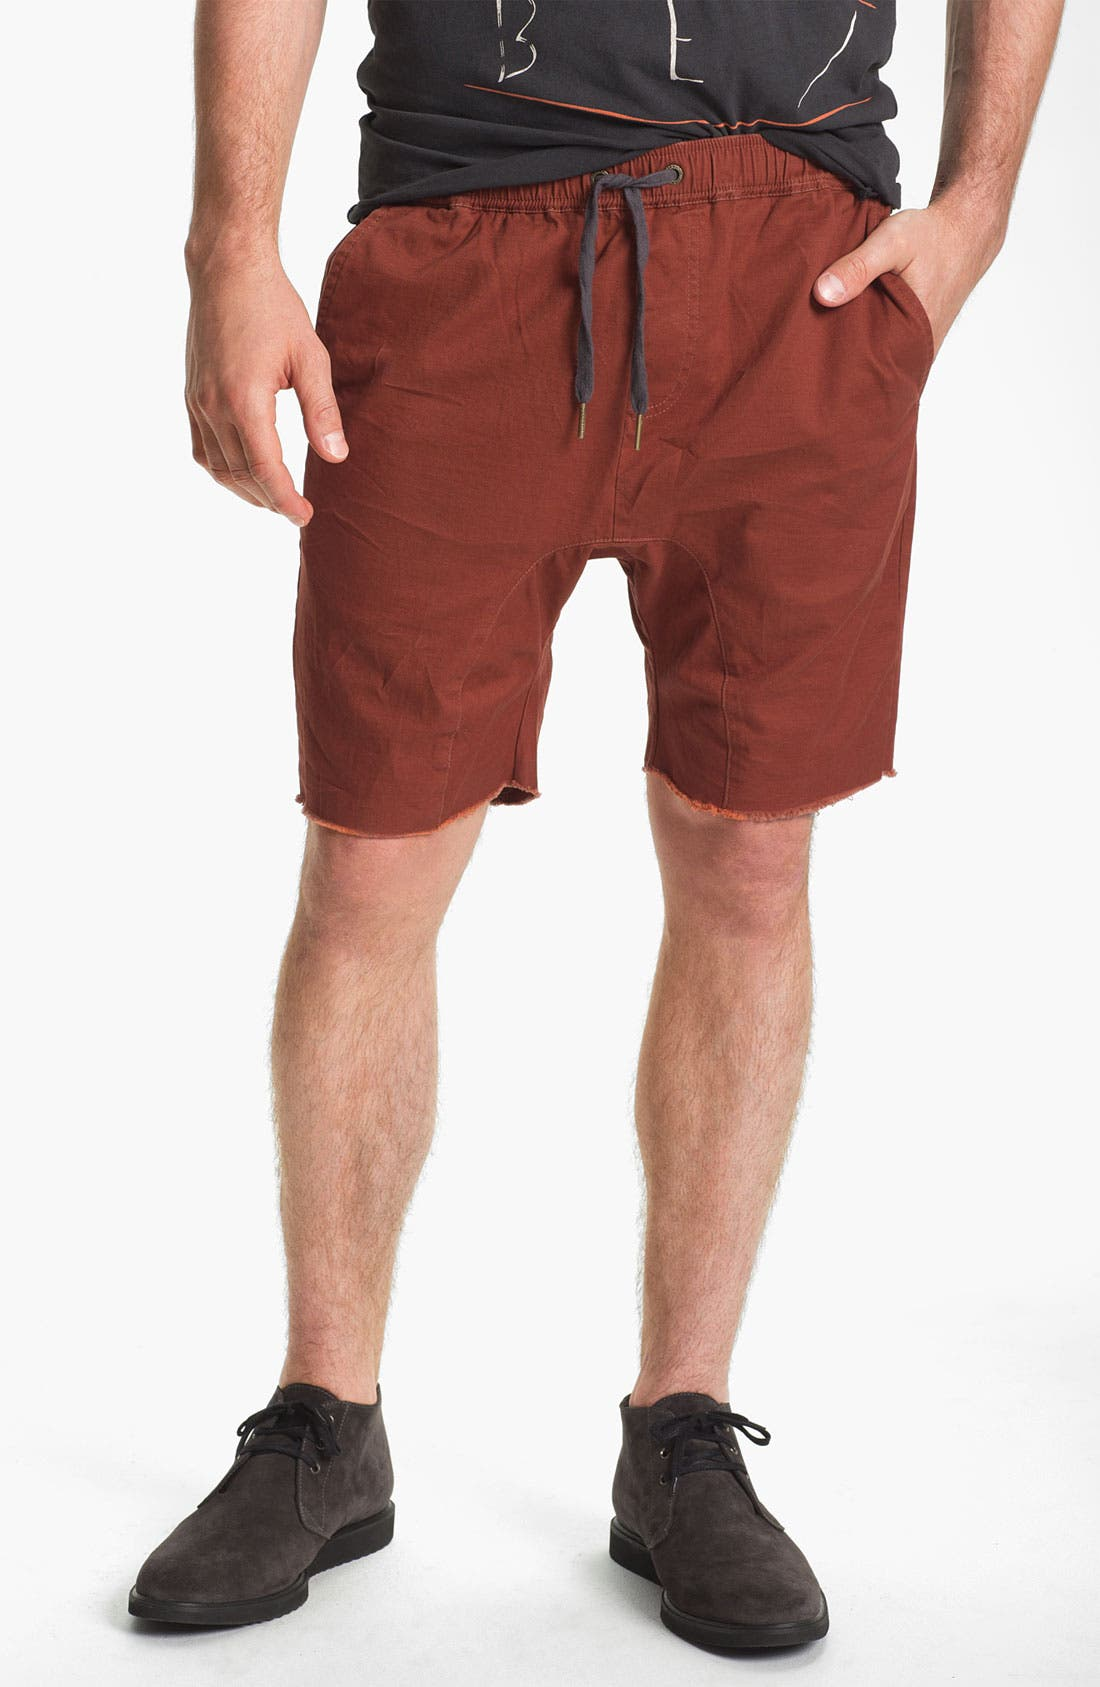 'Sureshot' Chino Shorts,                             Main thumbnail 1, color,                             640